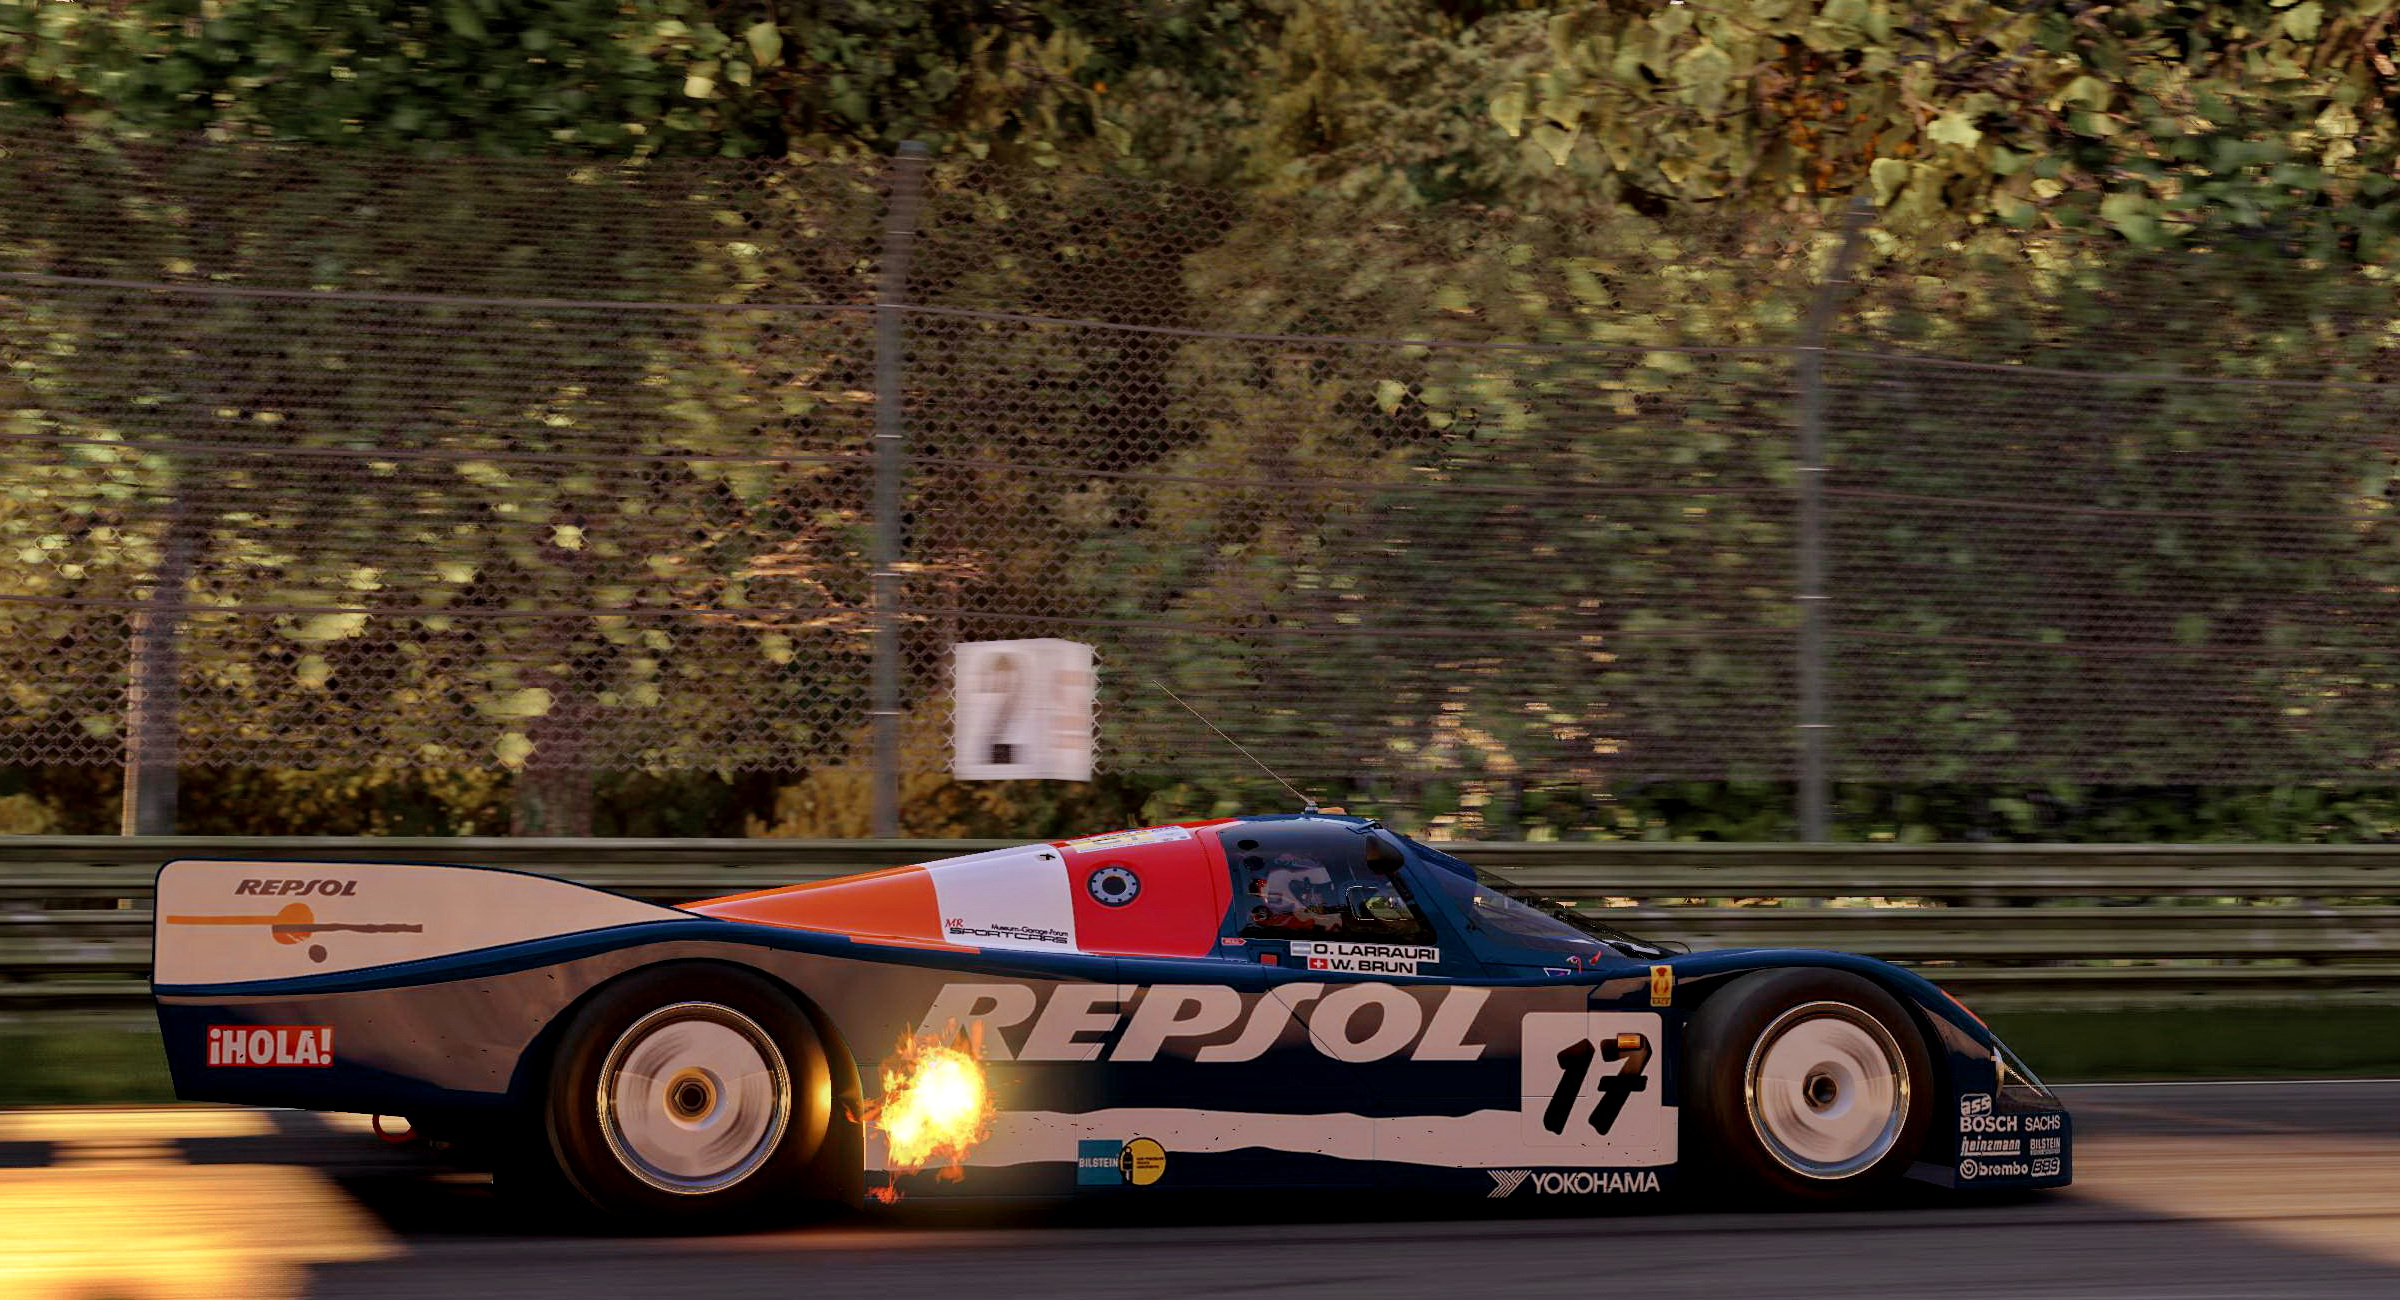 'REPSOL' Porsche 962L at Road America_028.jpg